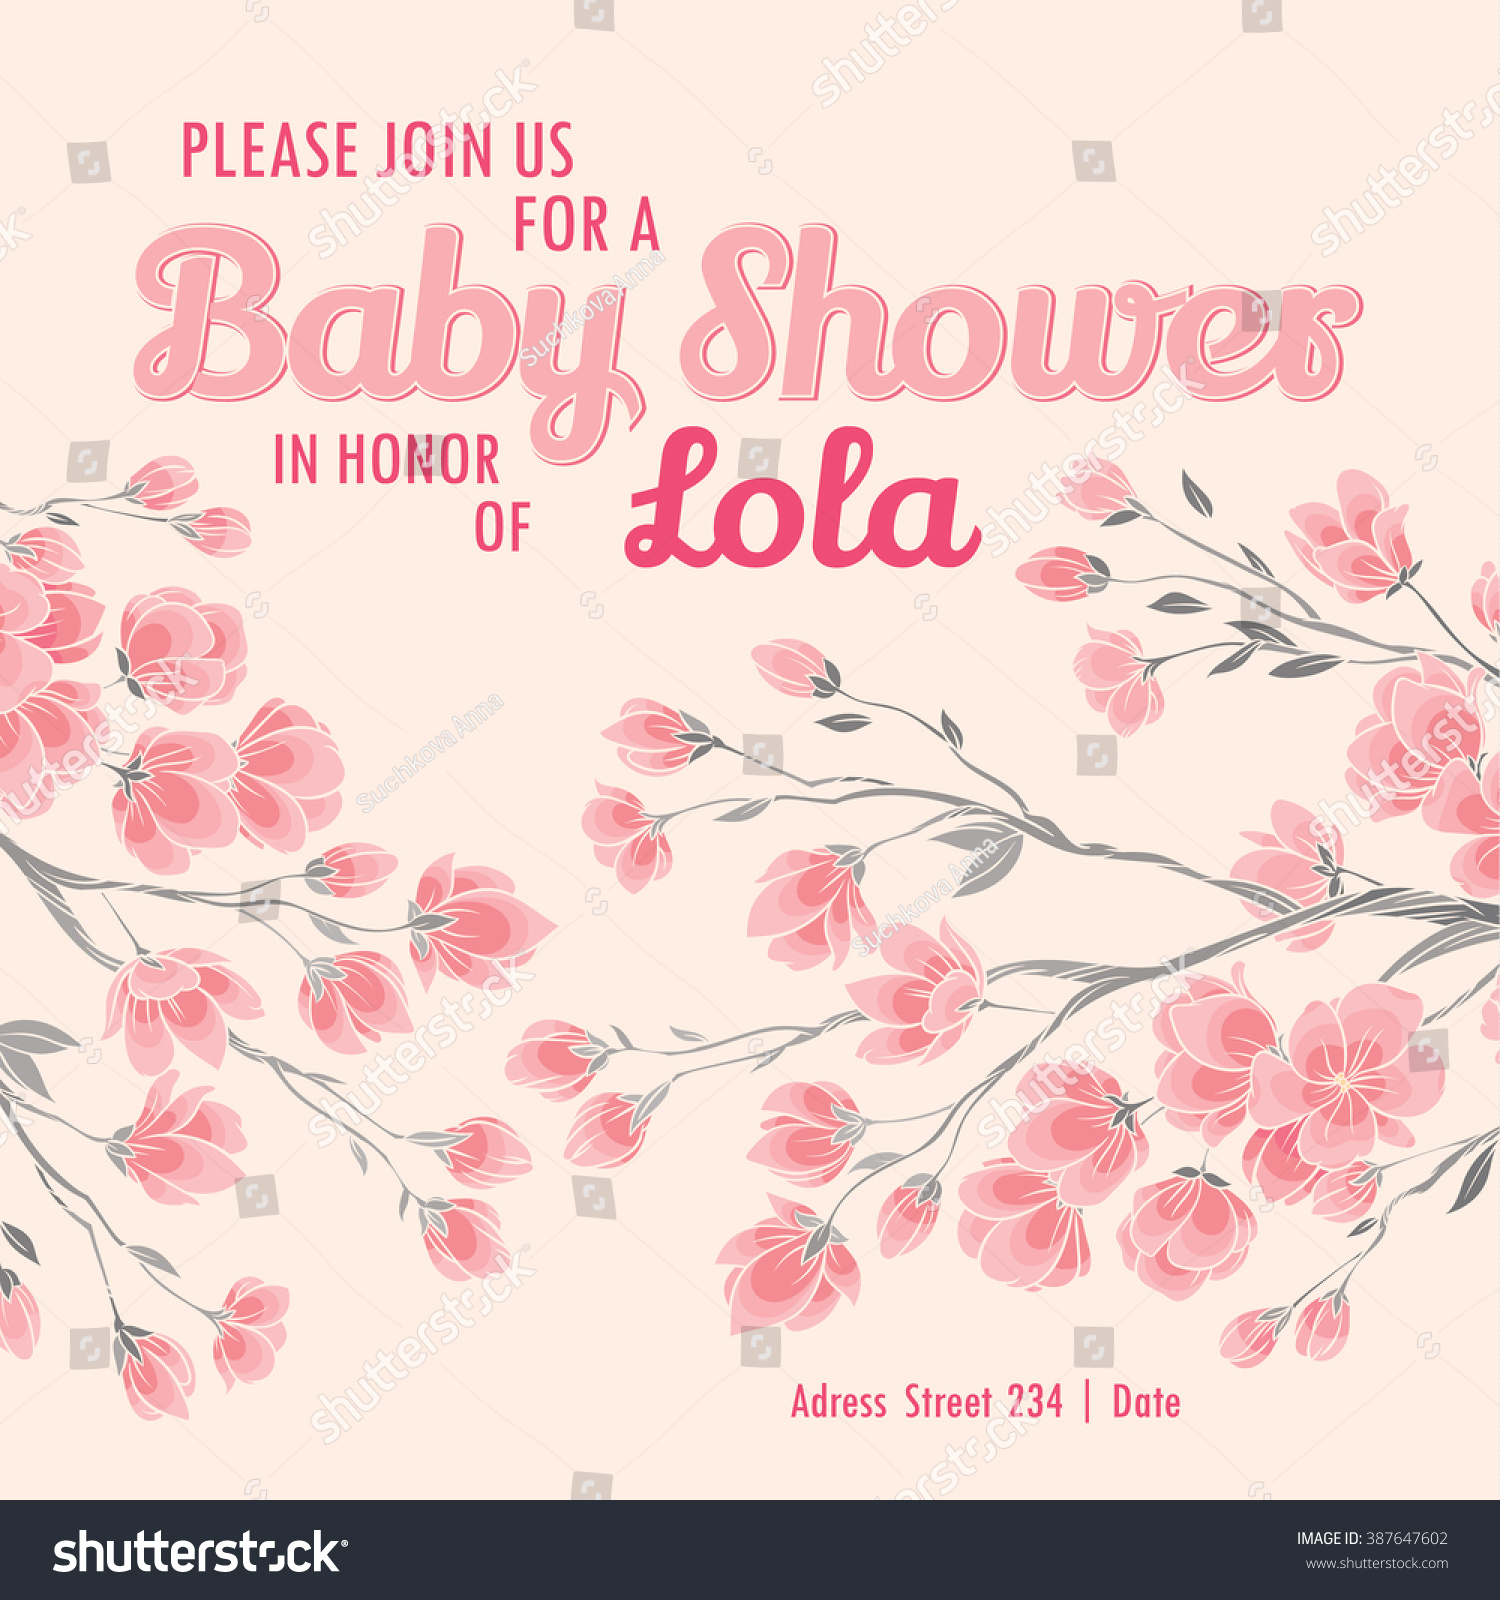 Baby Shower Invitation Card Spring Sakura Stock Vector 387647602 ...